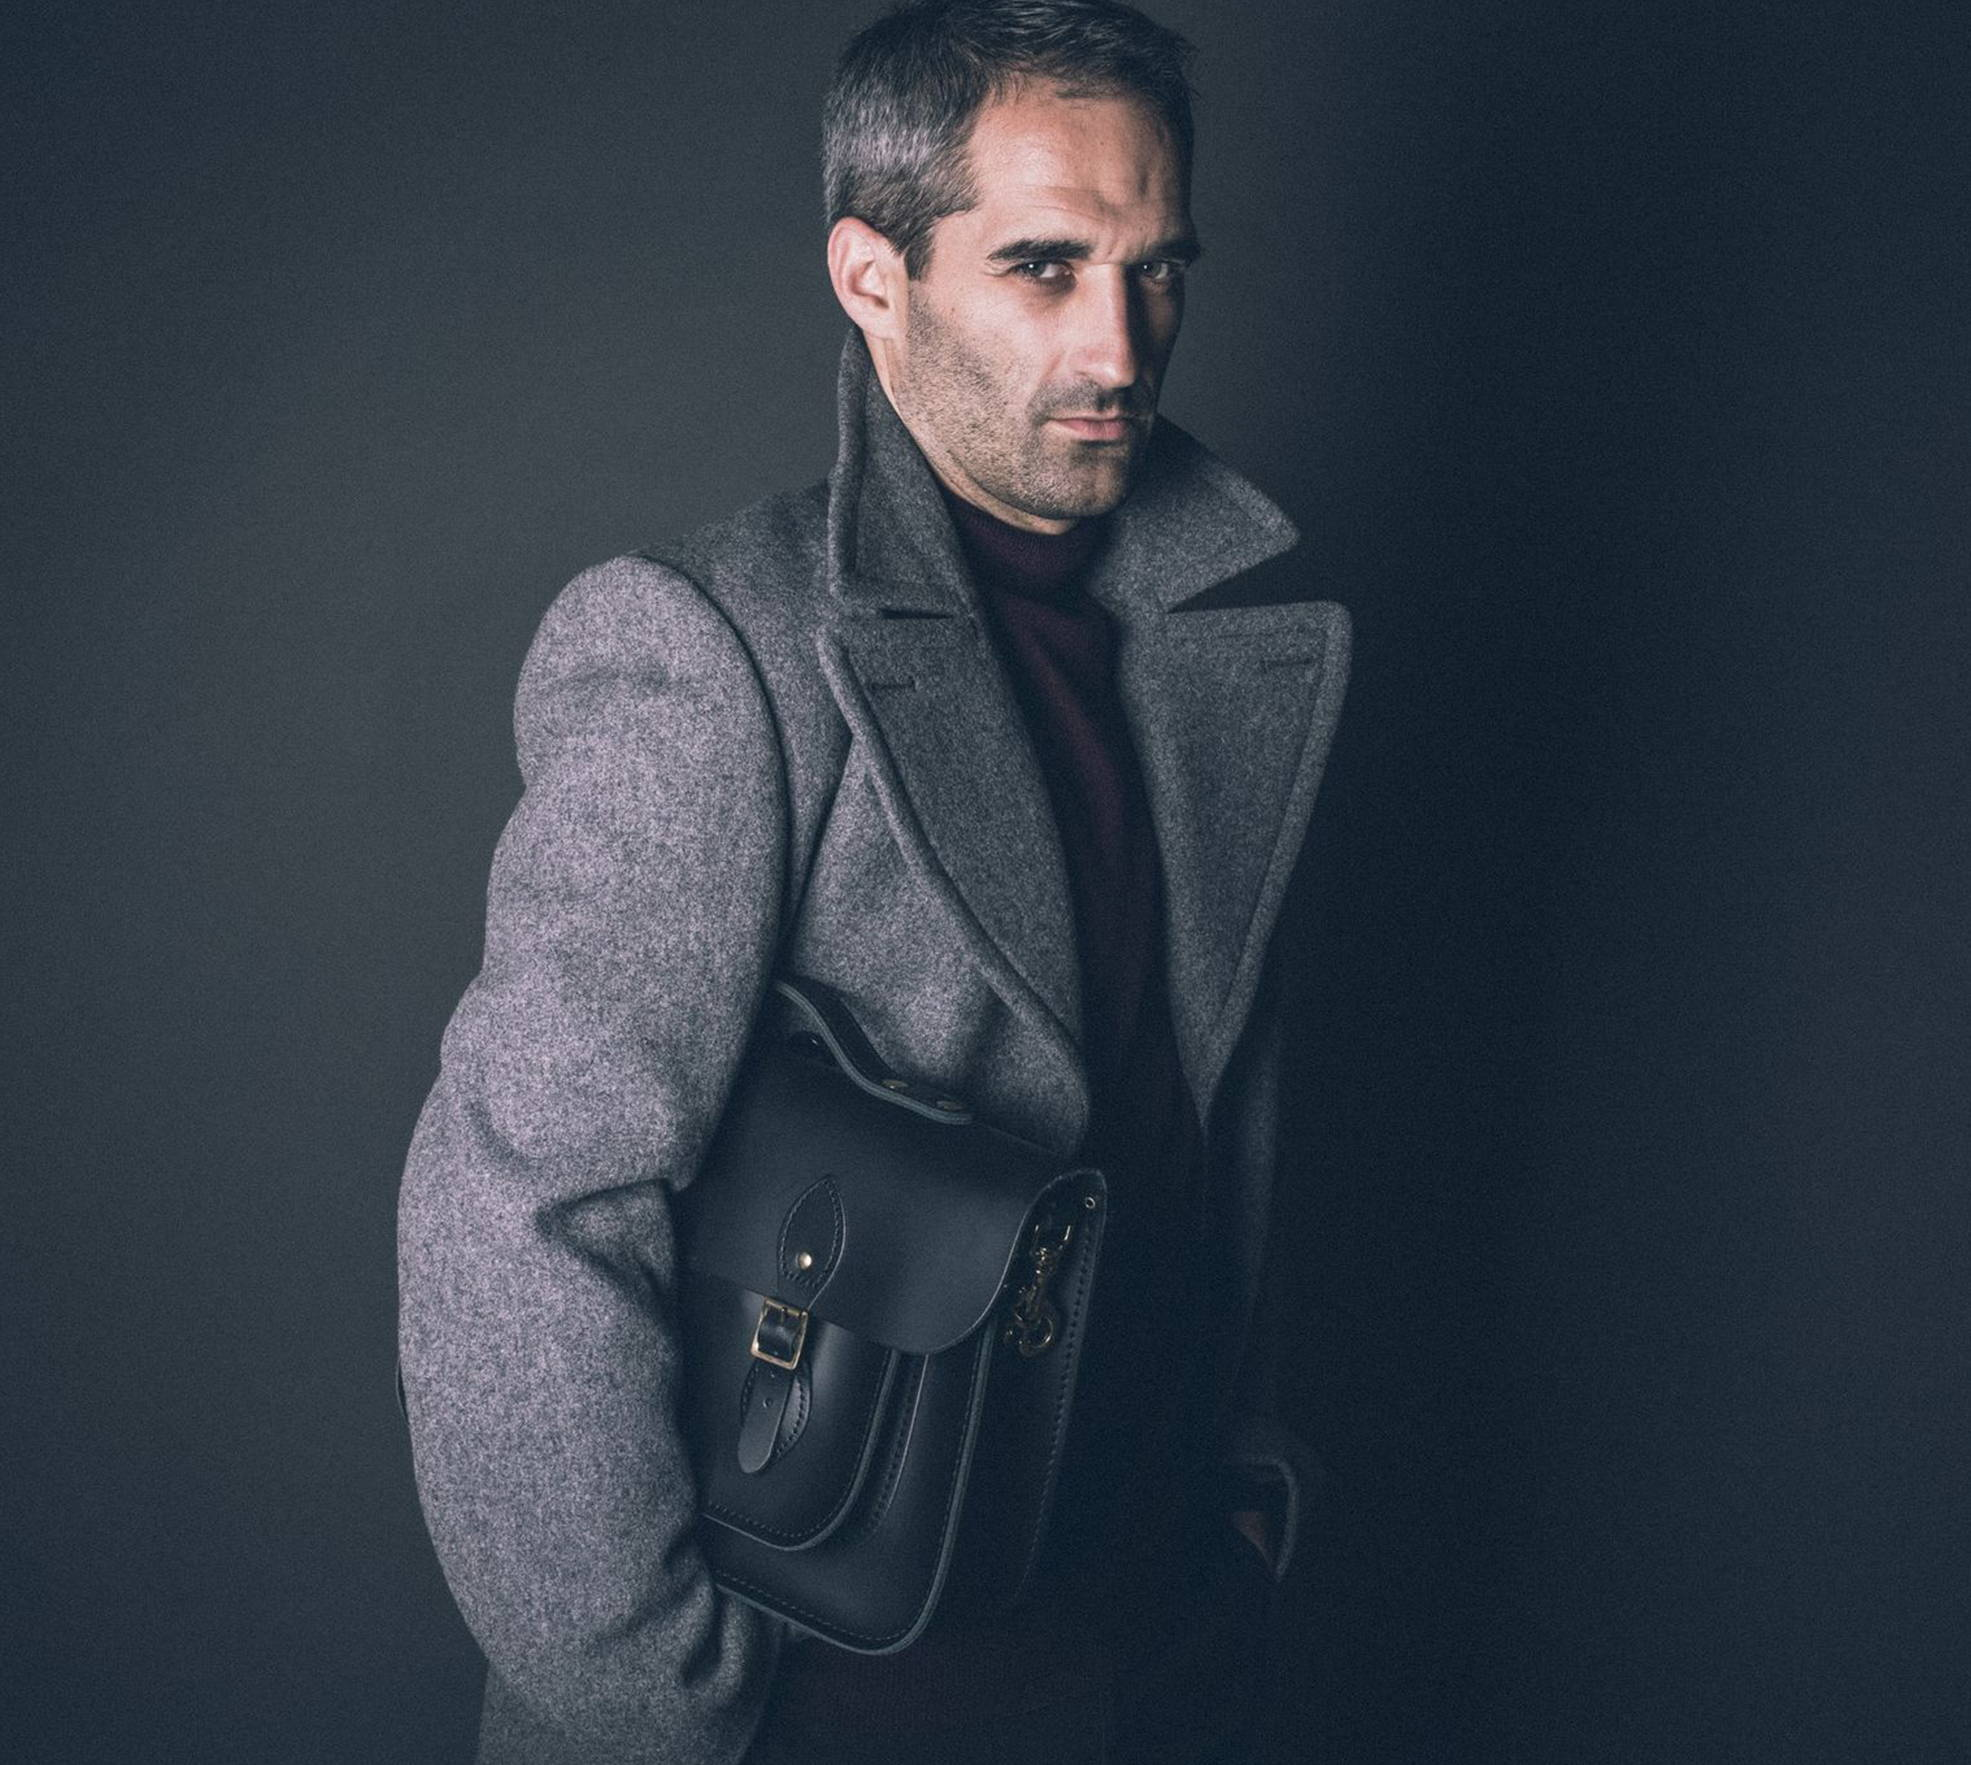 Man Wearing a Leather Briefcase